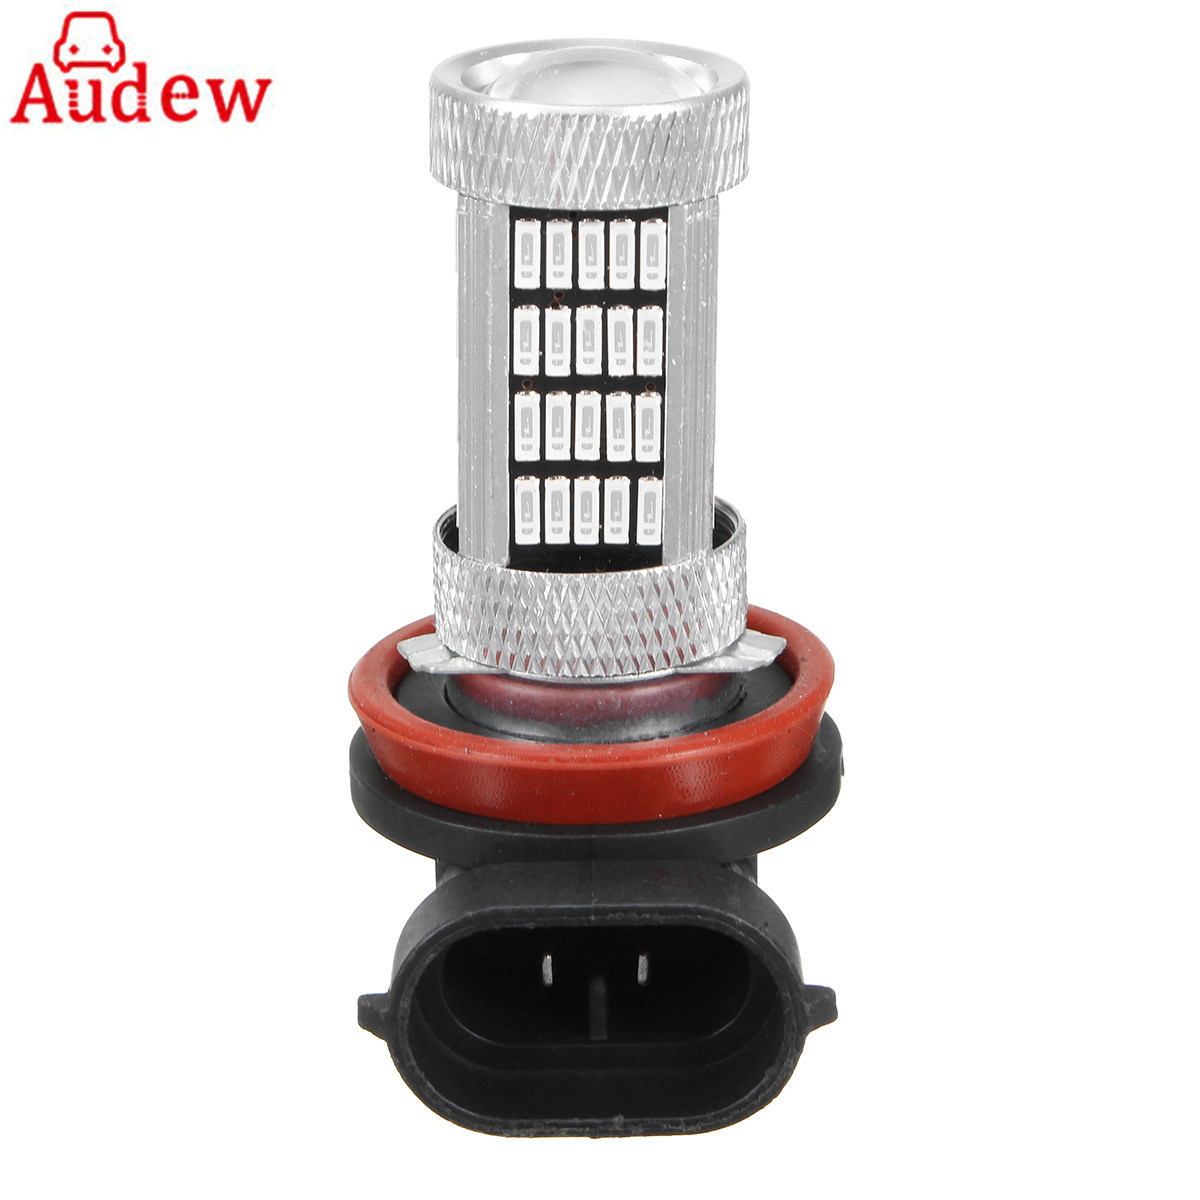 H10 9145 9140 9045 high power 92-SMD Blue Car LED bulbs for  fog lights or driving lamps upgrade. 63 smd projector h10 9145 led fog light 9140 bulbs for driving light py20d 12v 24v bright than 33 smd white